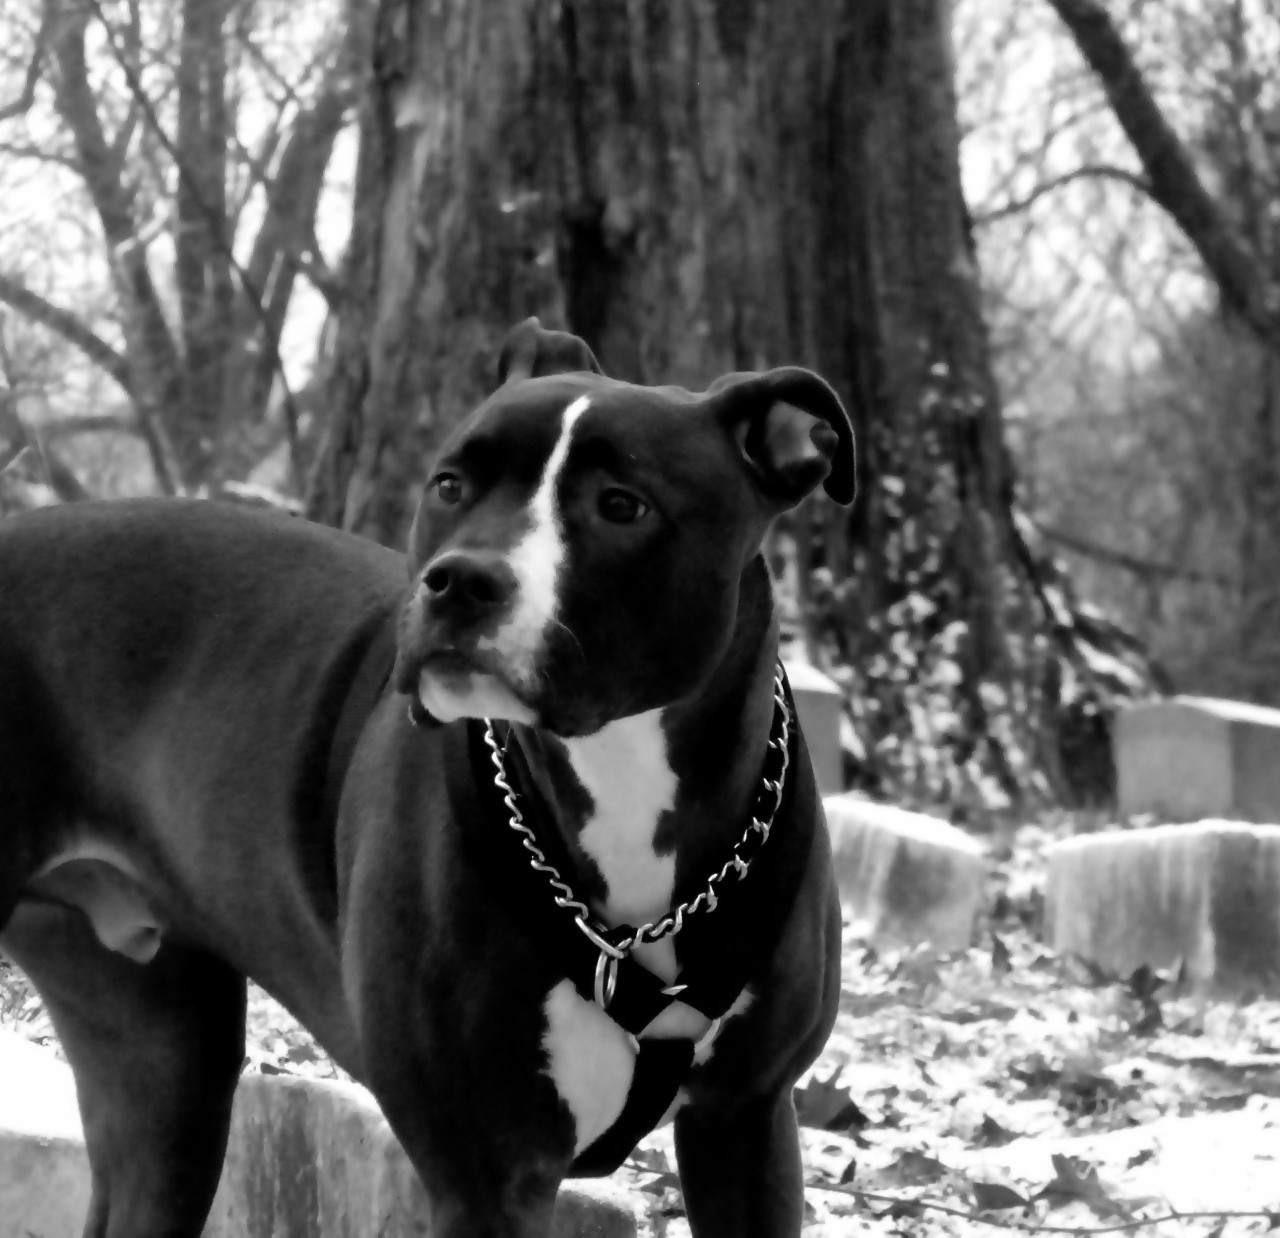 #Photography #pet #Animal #graveyard #blackandwhite #nature #black #art #artist #eric #f4f